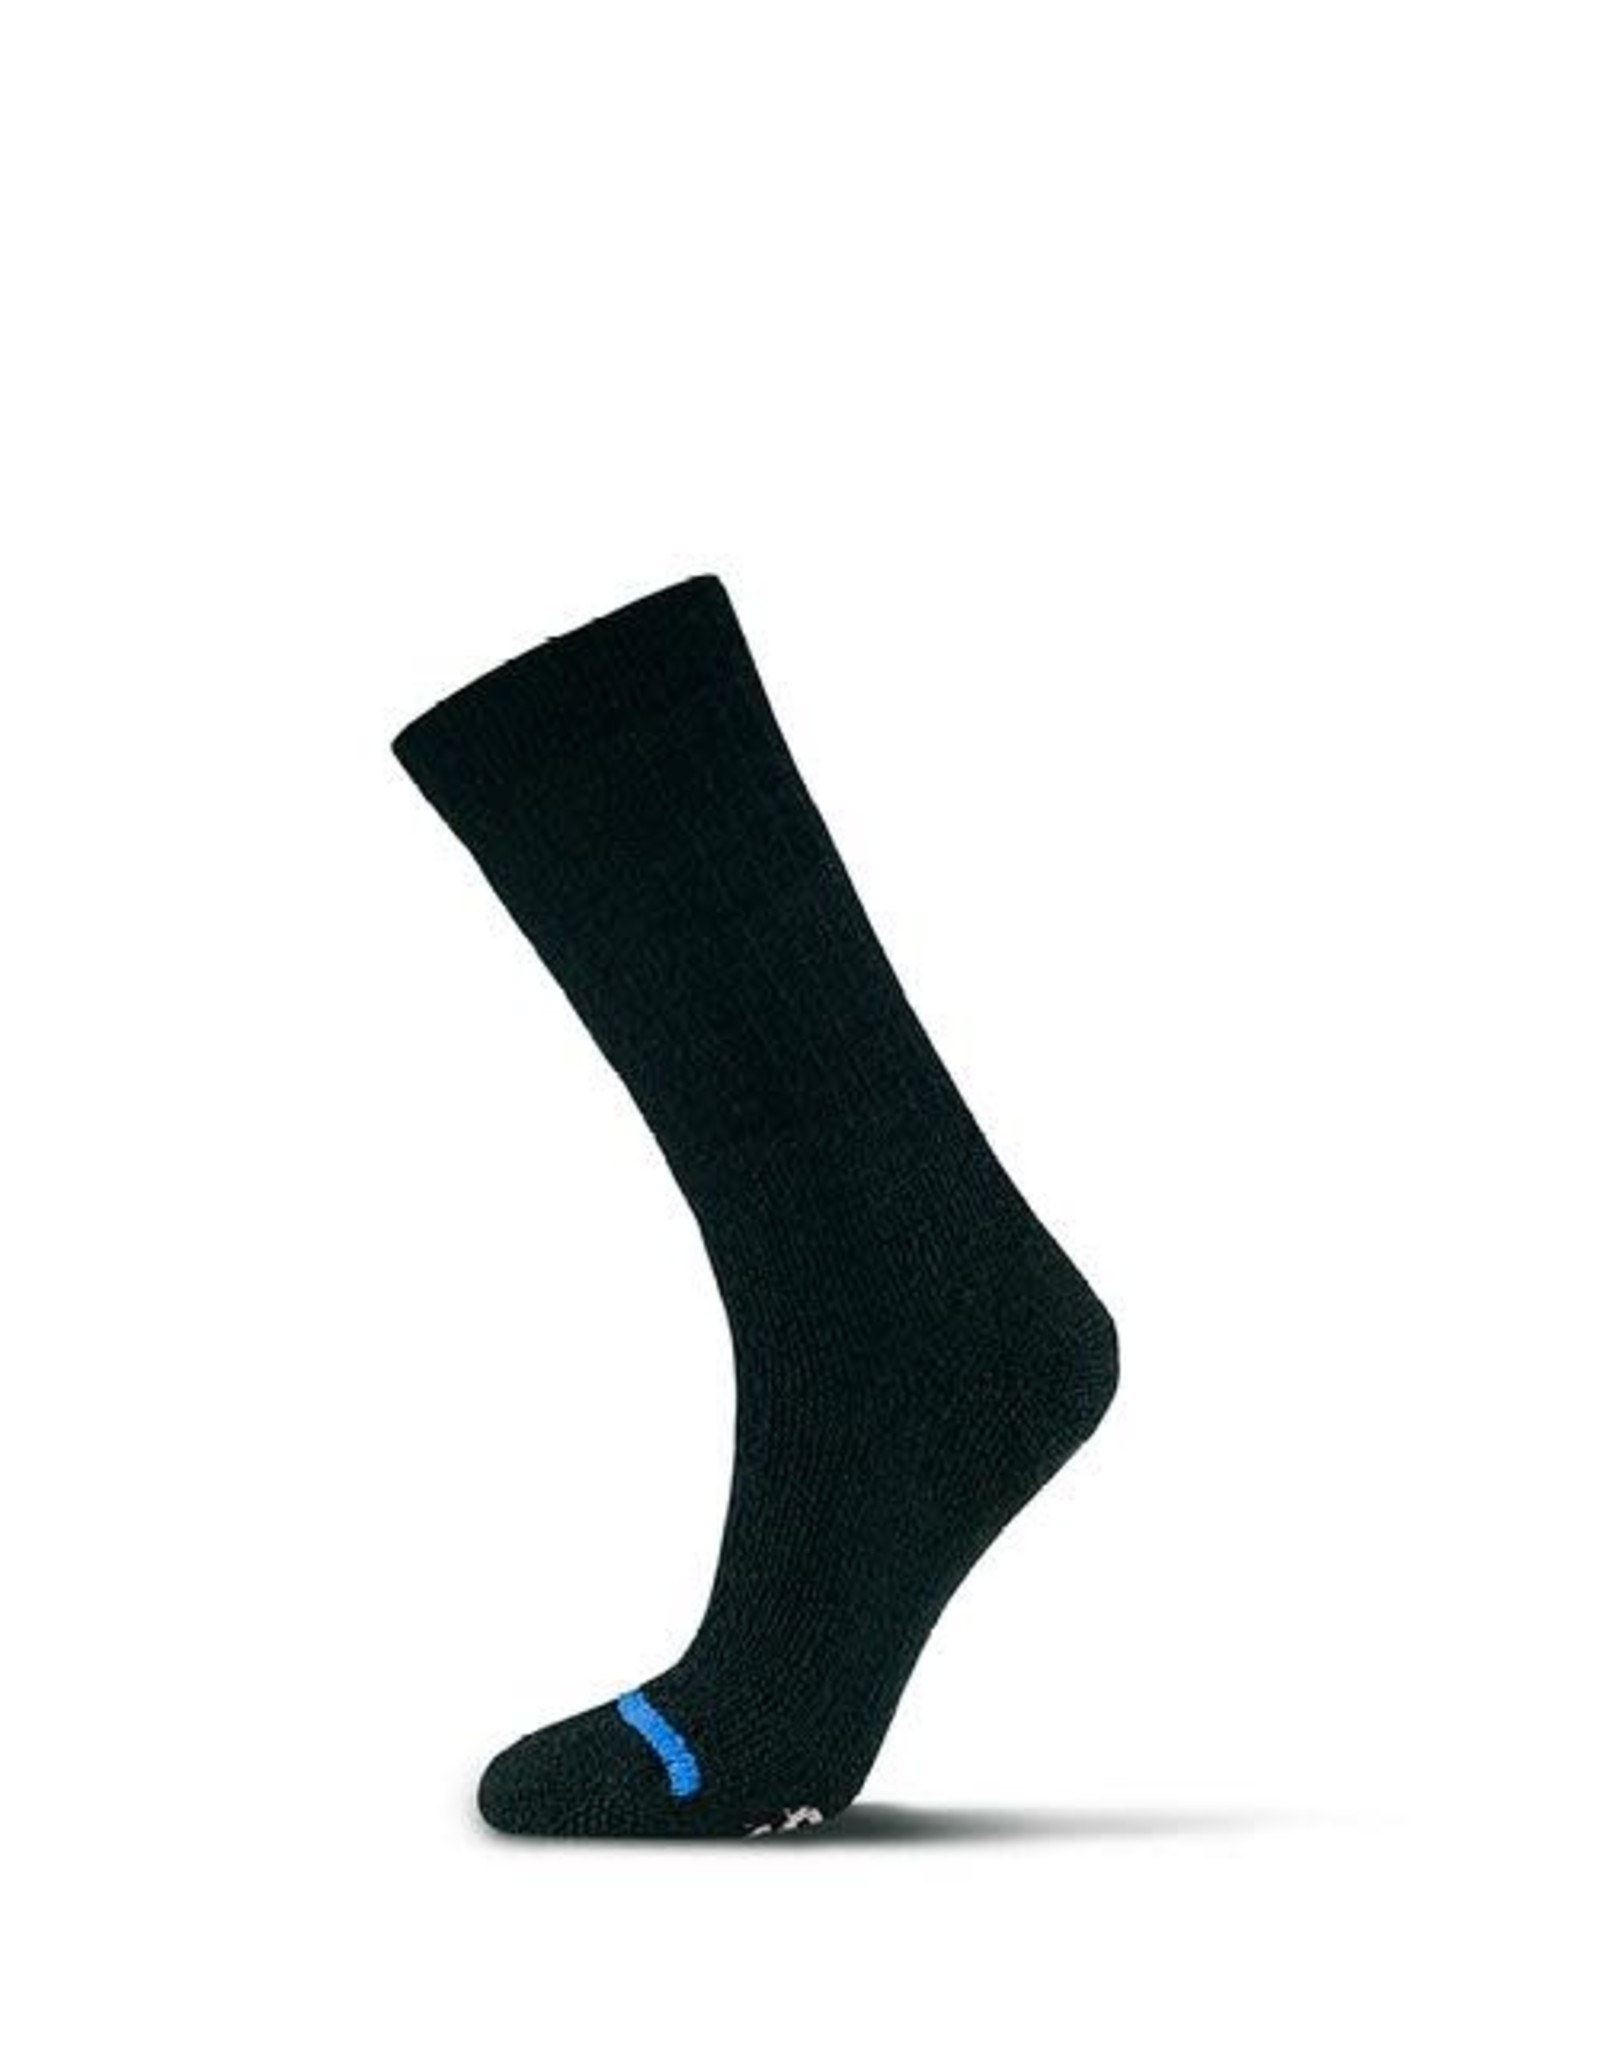 FITS FITS Heavy Expedition Sock